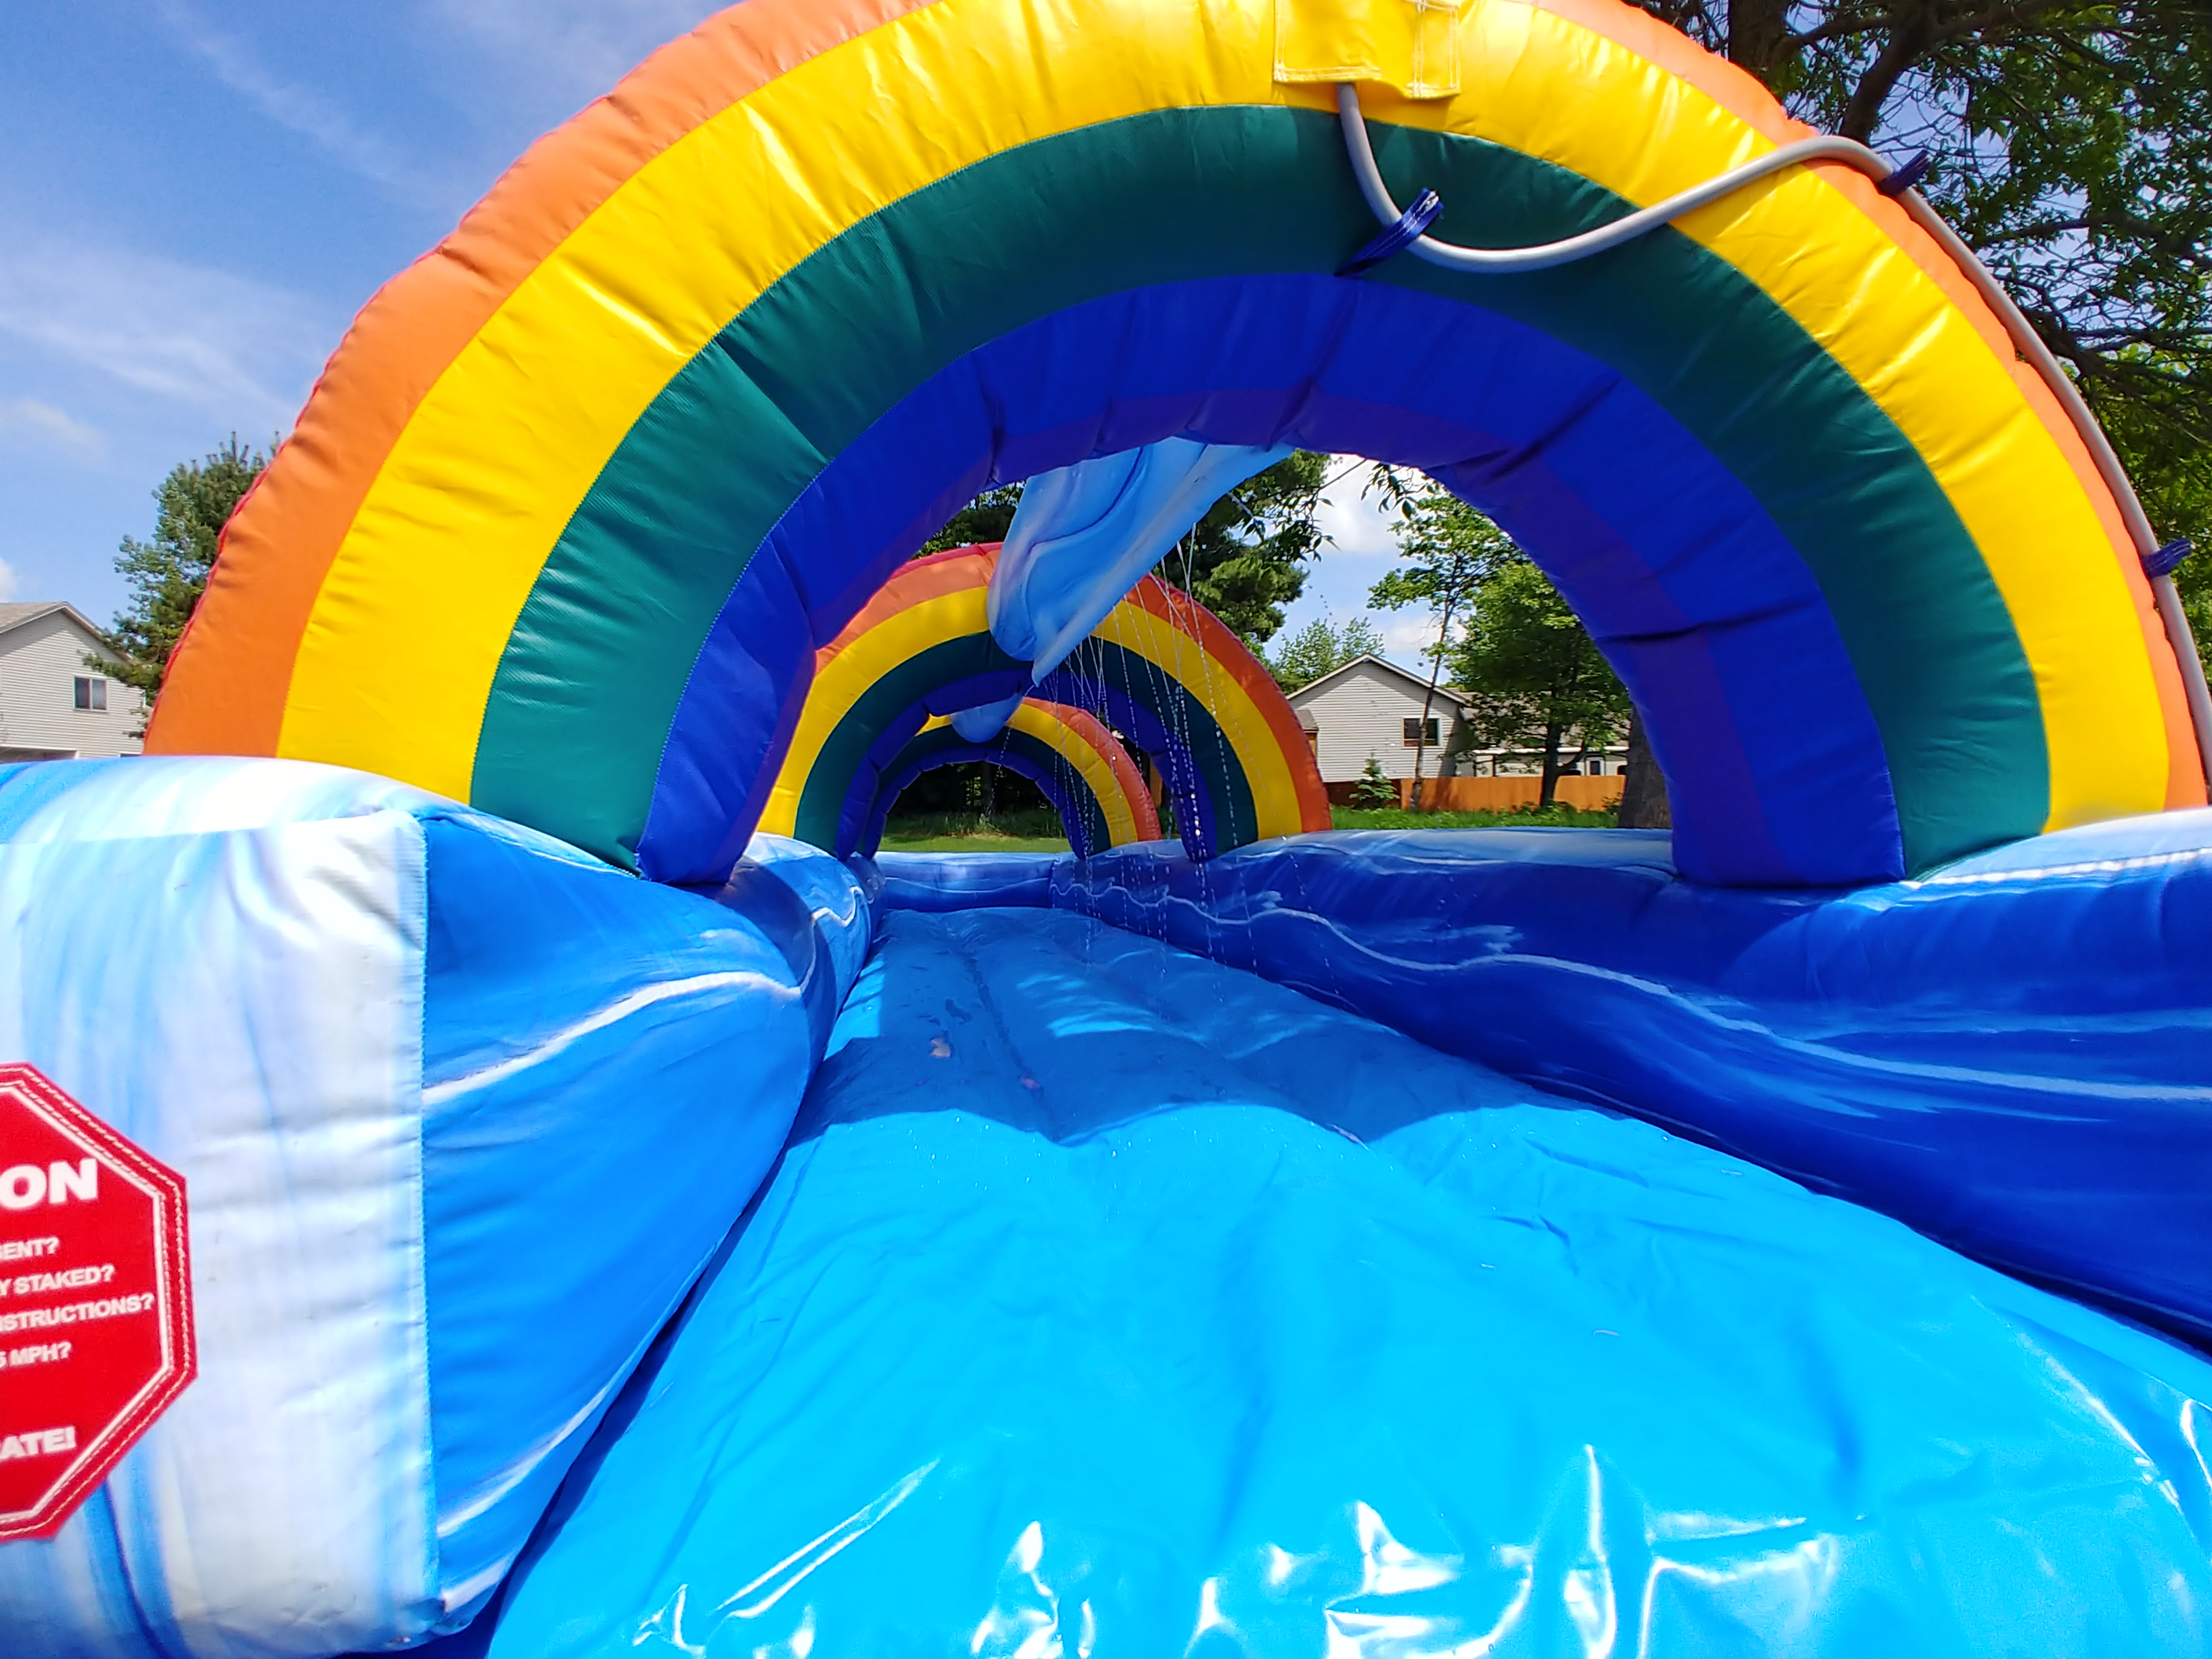 Your garden hose connects to make a constant flow of water over the slip-n-slide.